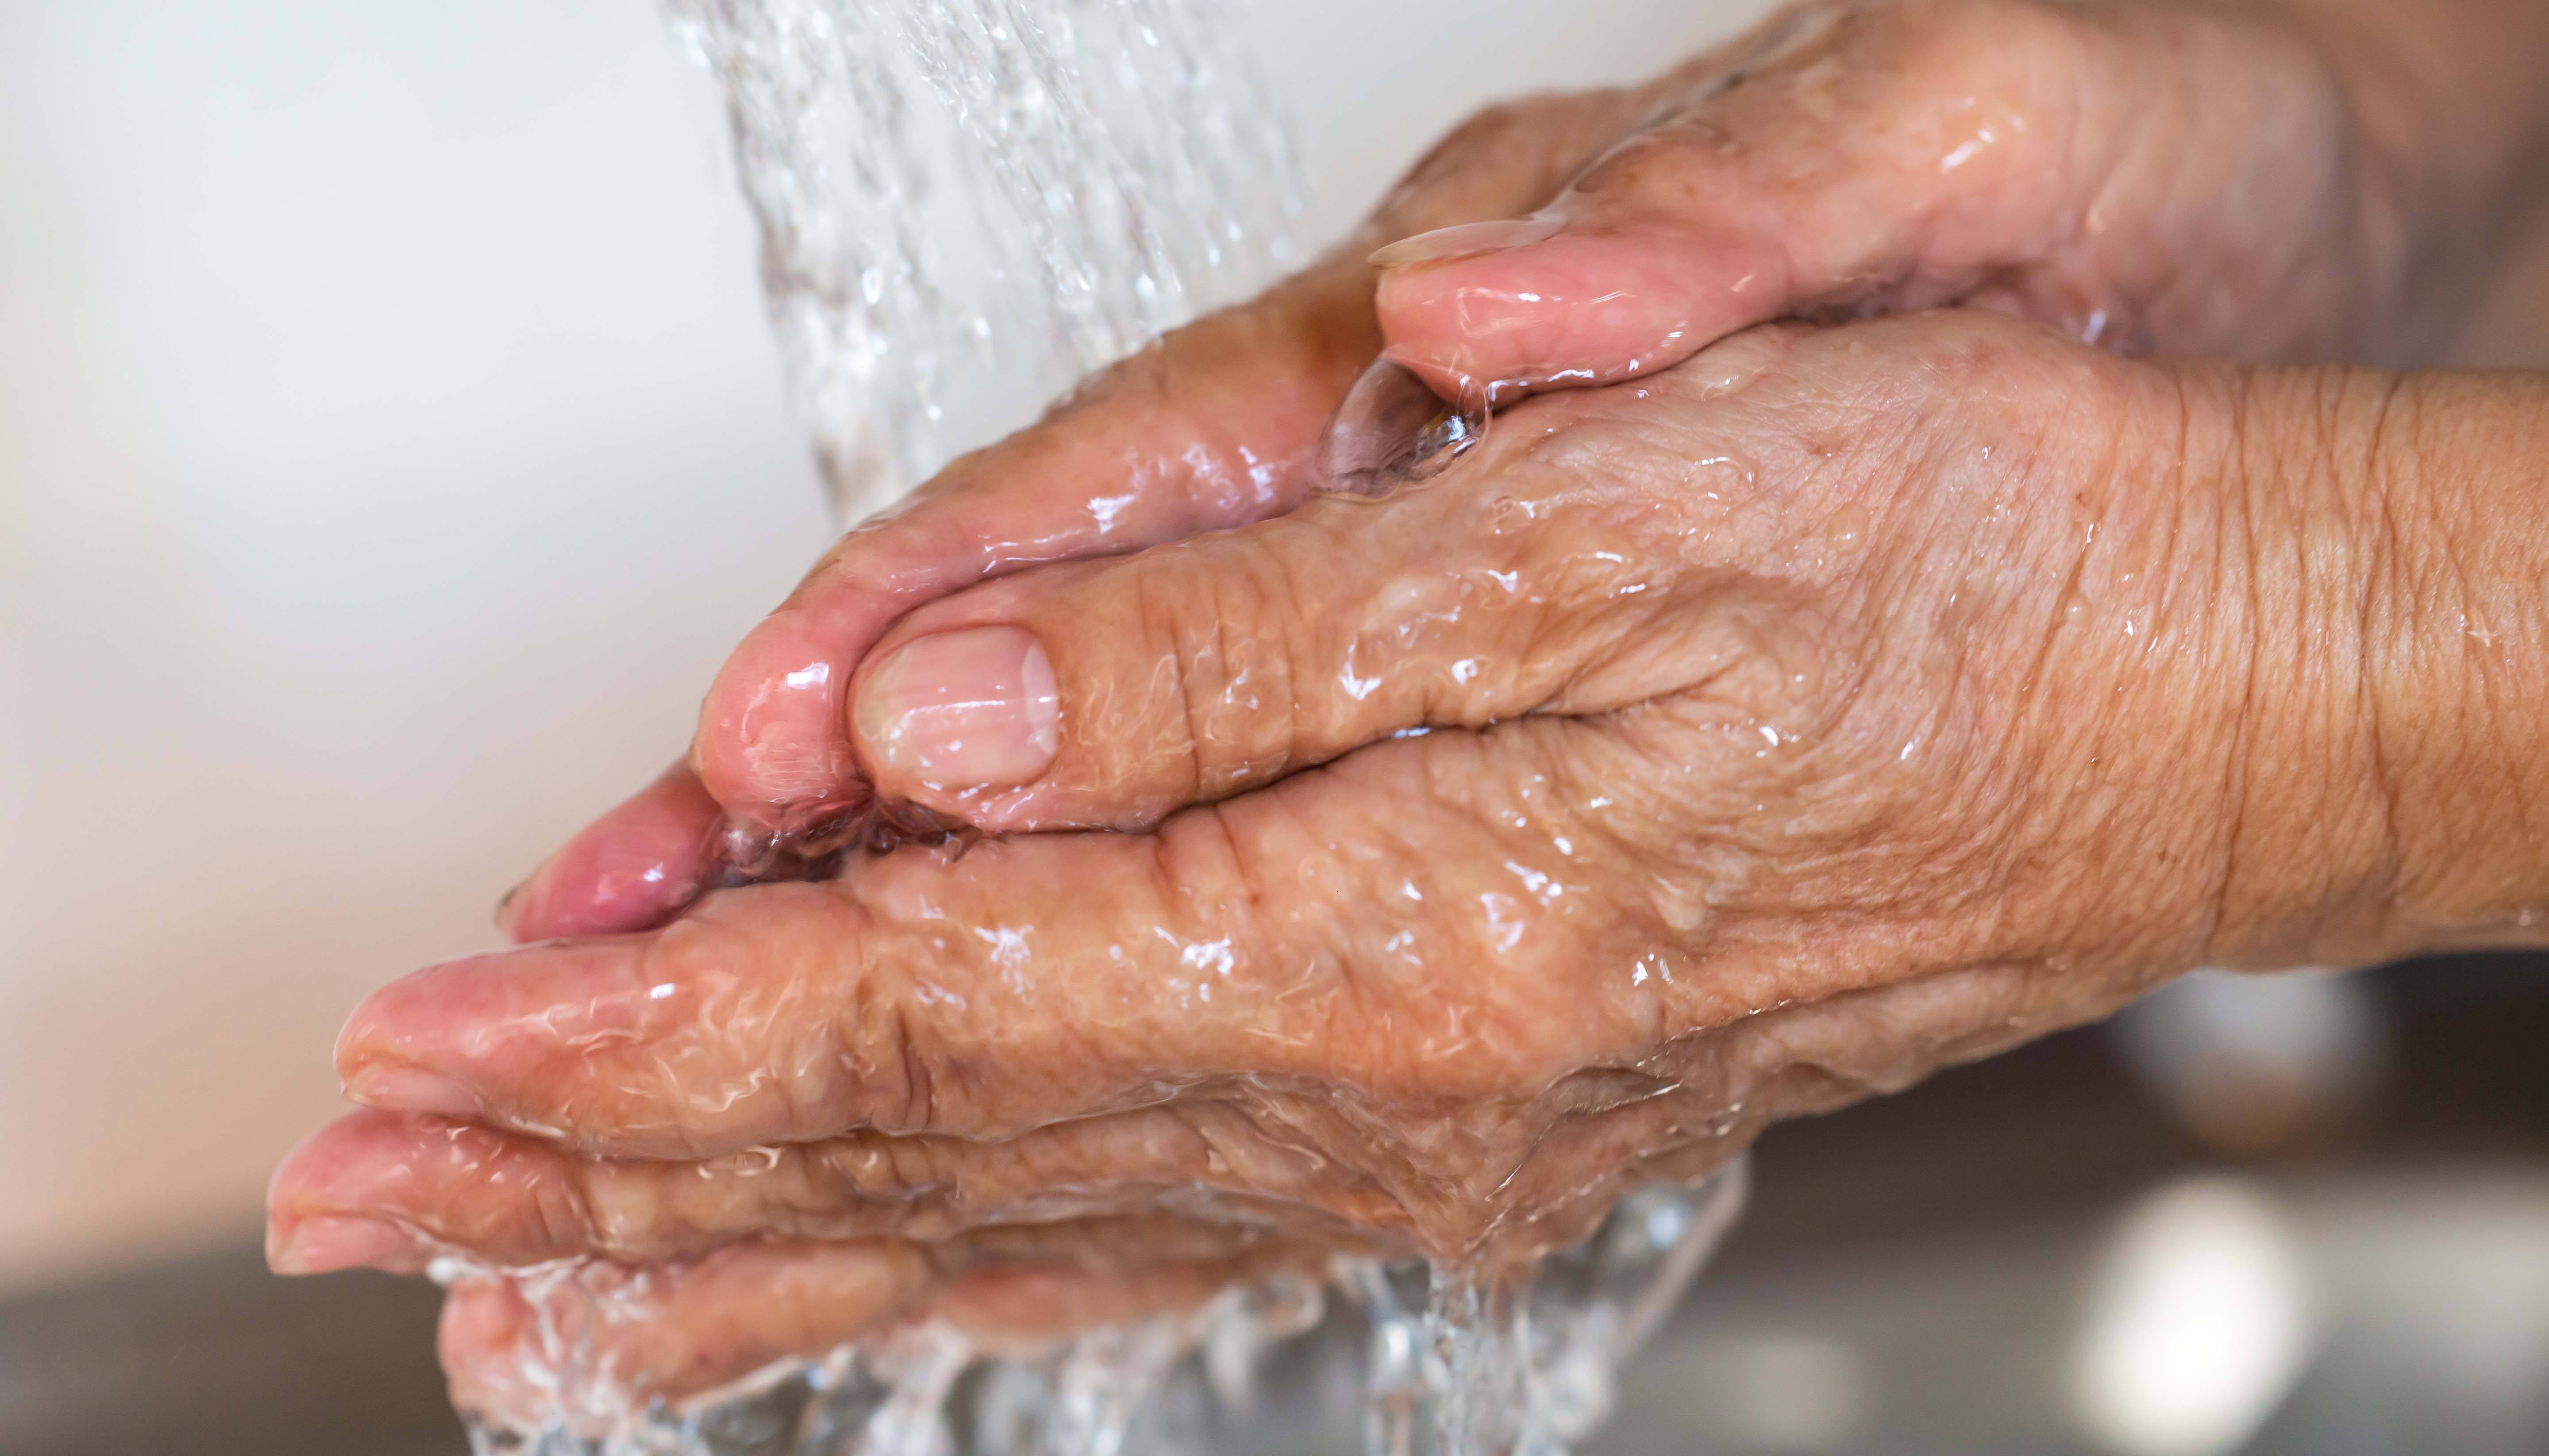 Skin disease and hand washing: soothing a flare up